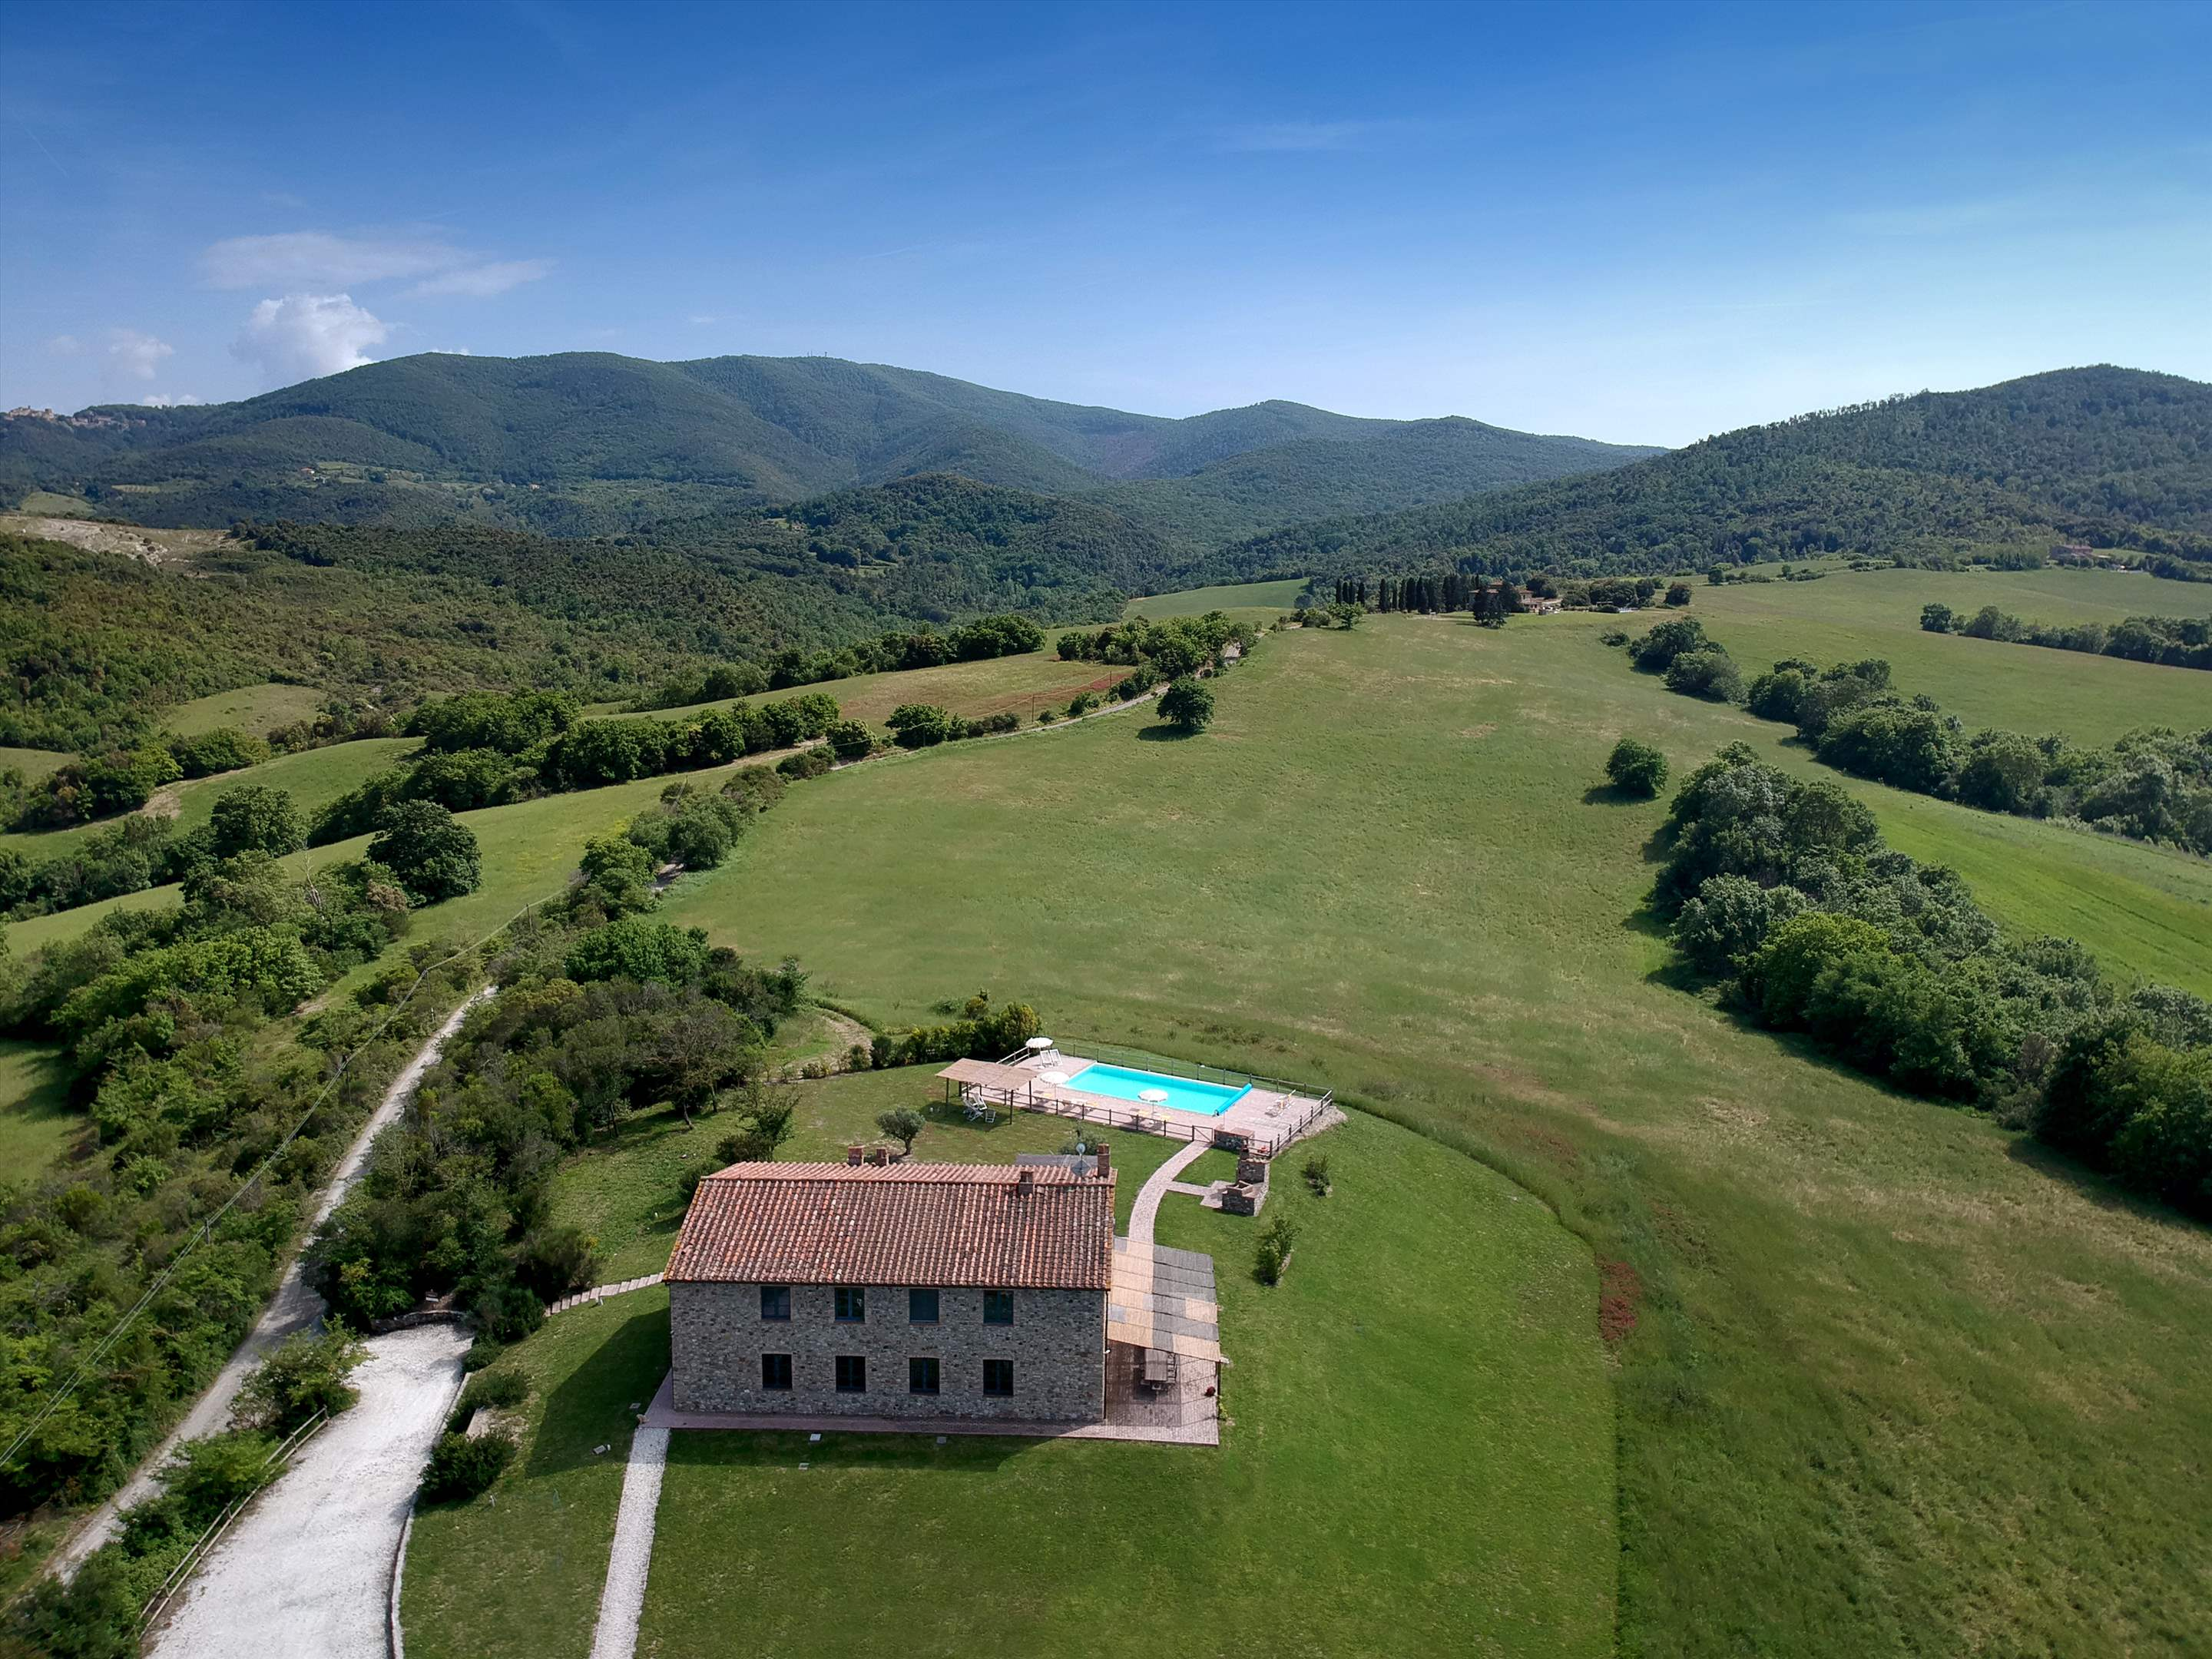 Podere Di Collina, Villa & Apts, 8 bedroom villa in Tuscany Coast, Tuscany Photo #2